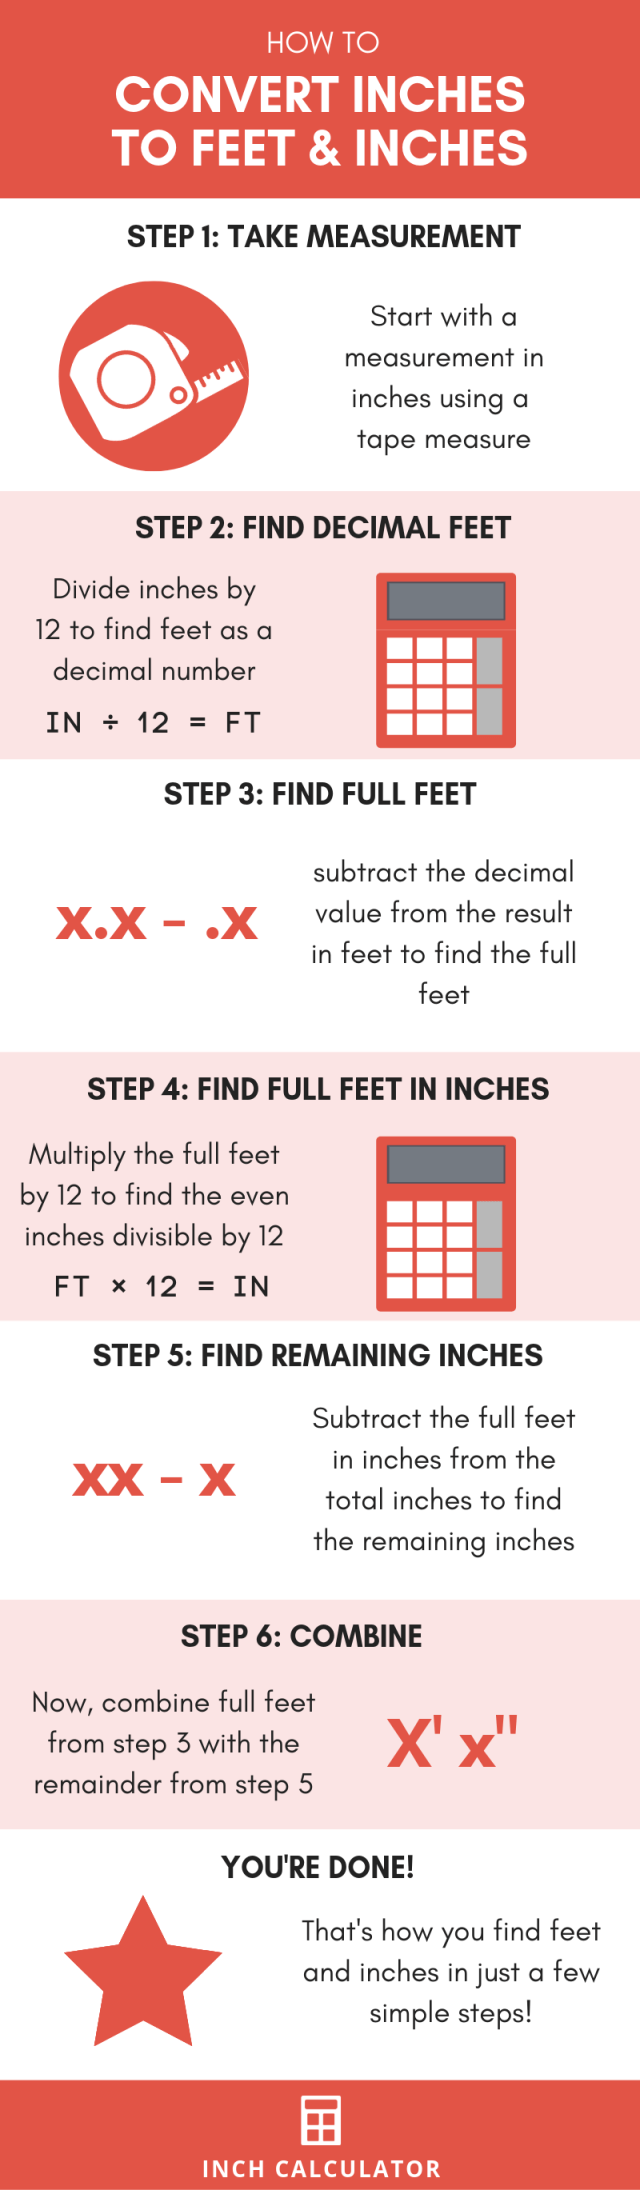 Inches to Feet Conversion Calculator (in to ft) - Inch Calculator